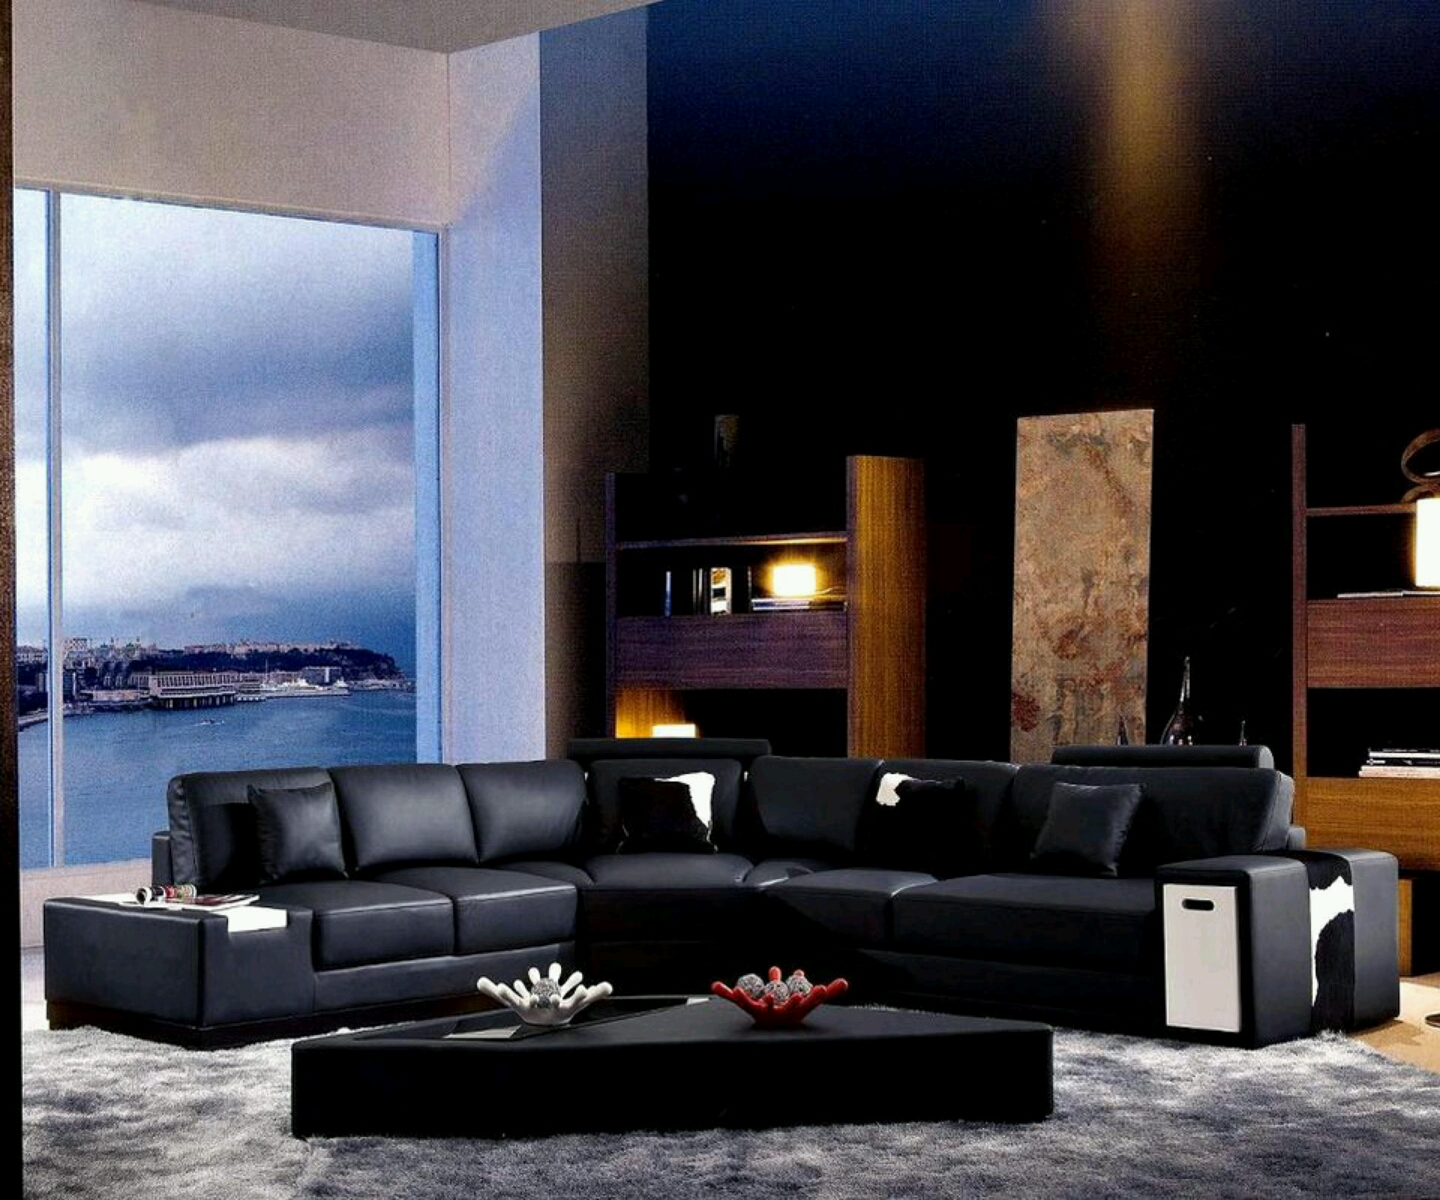 New Home Designs Latest Luxury Living Rooms Interior: New Home Designs Latest.: Luxury Living Rooms Interior